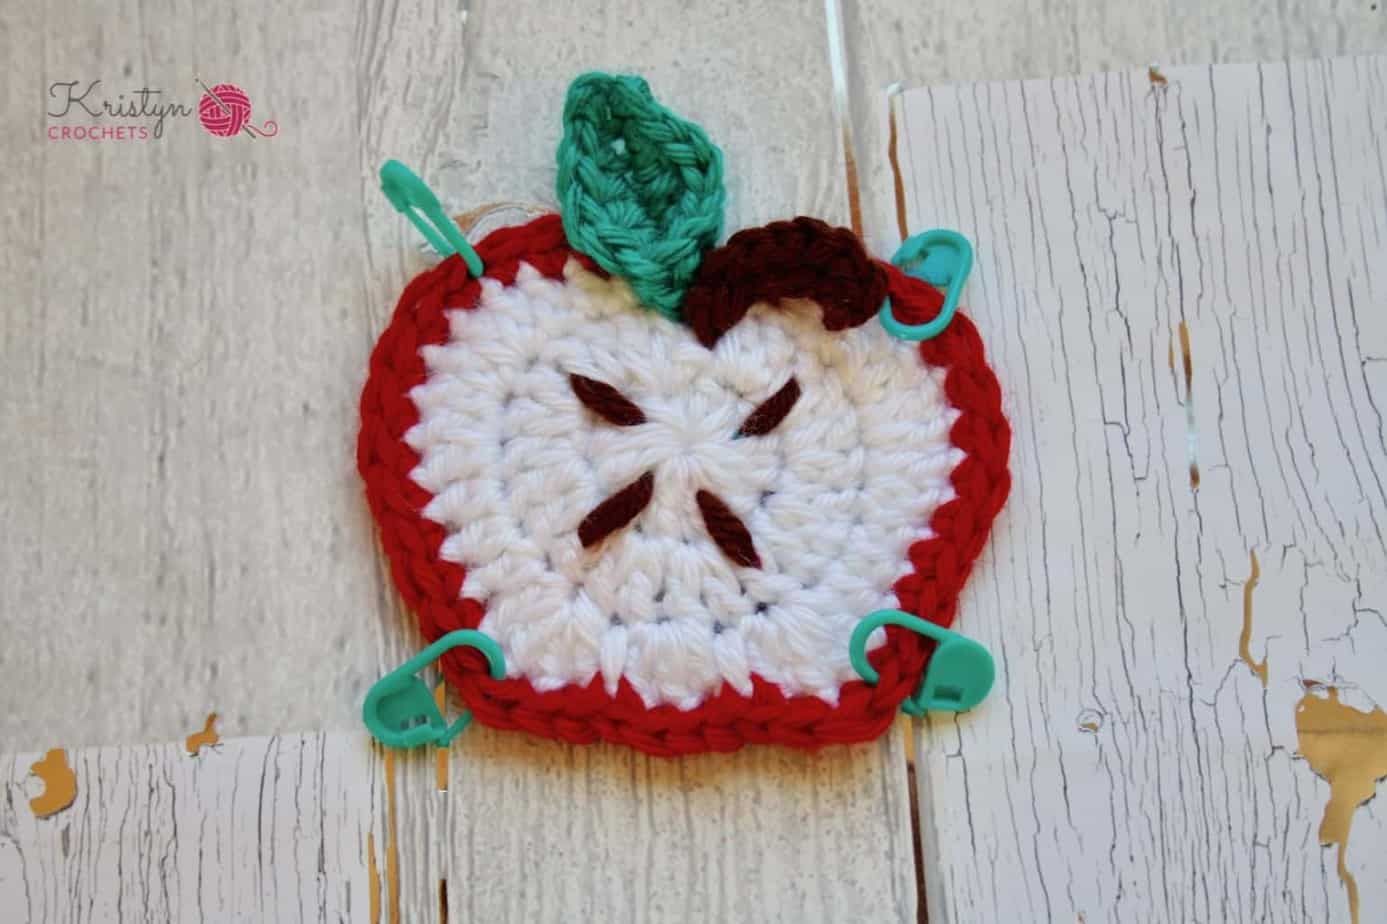 Apple Granny Square a free crochet pattern